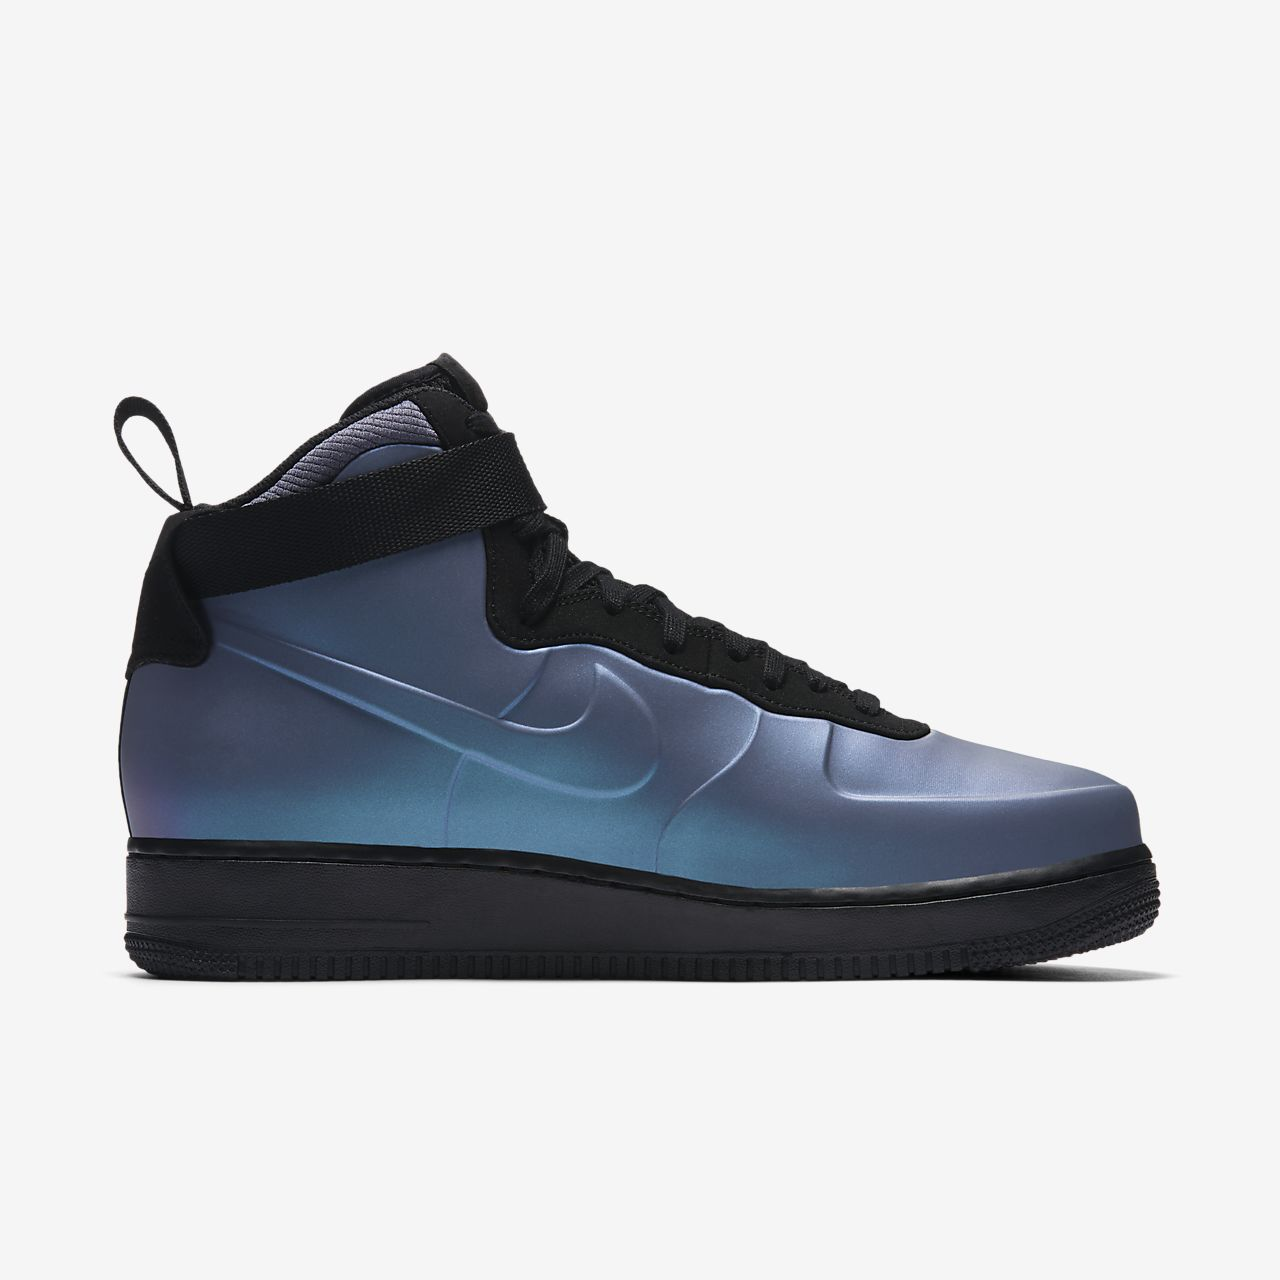 men's air force 1 basketball shoe nz